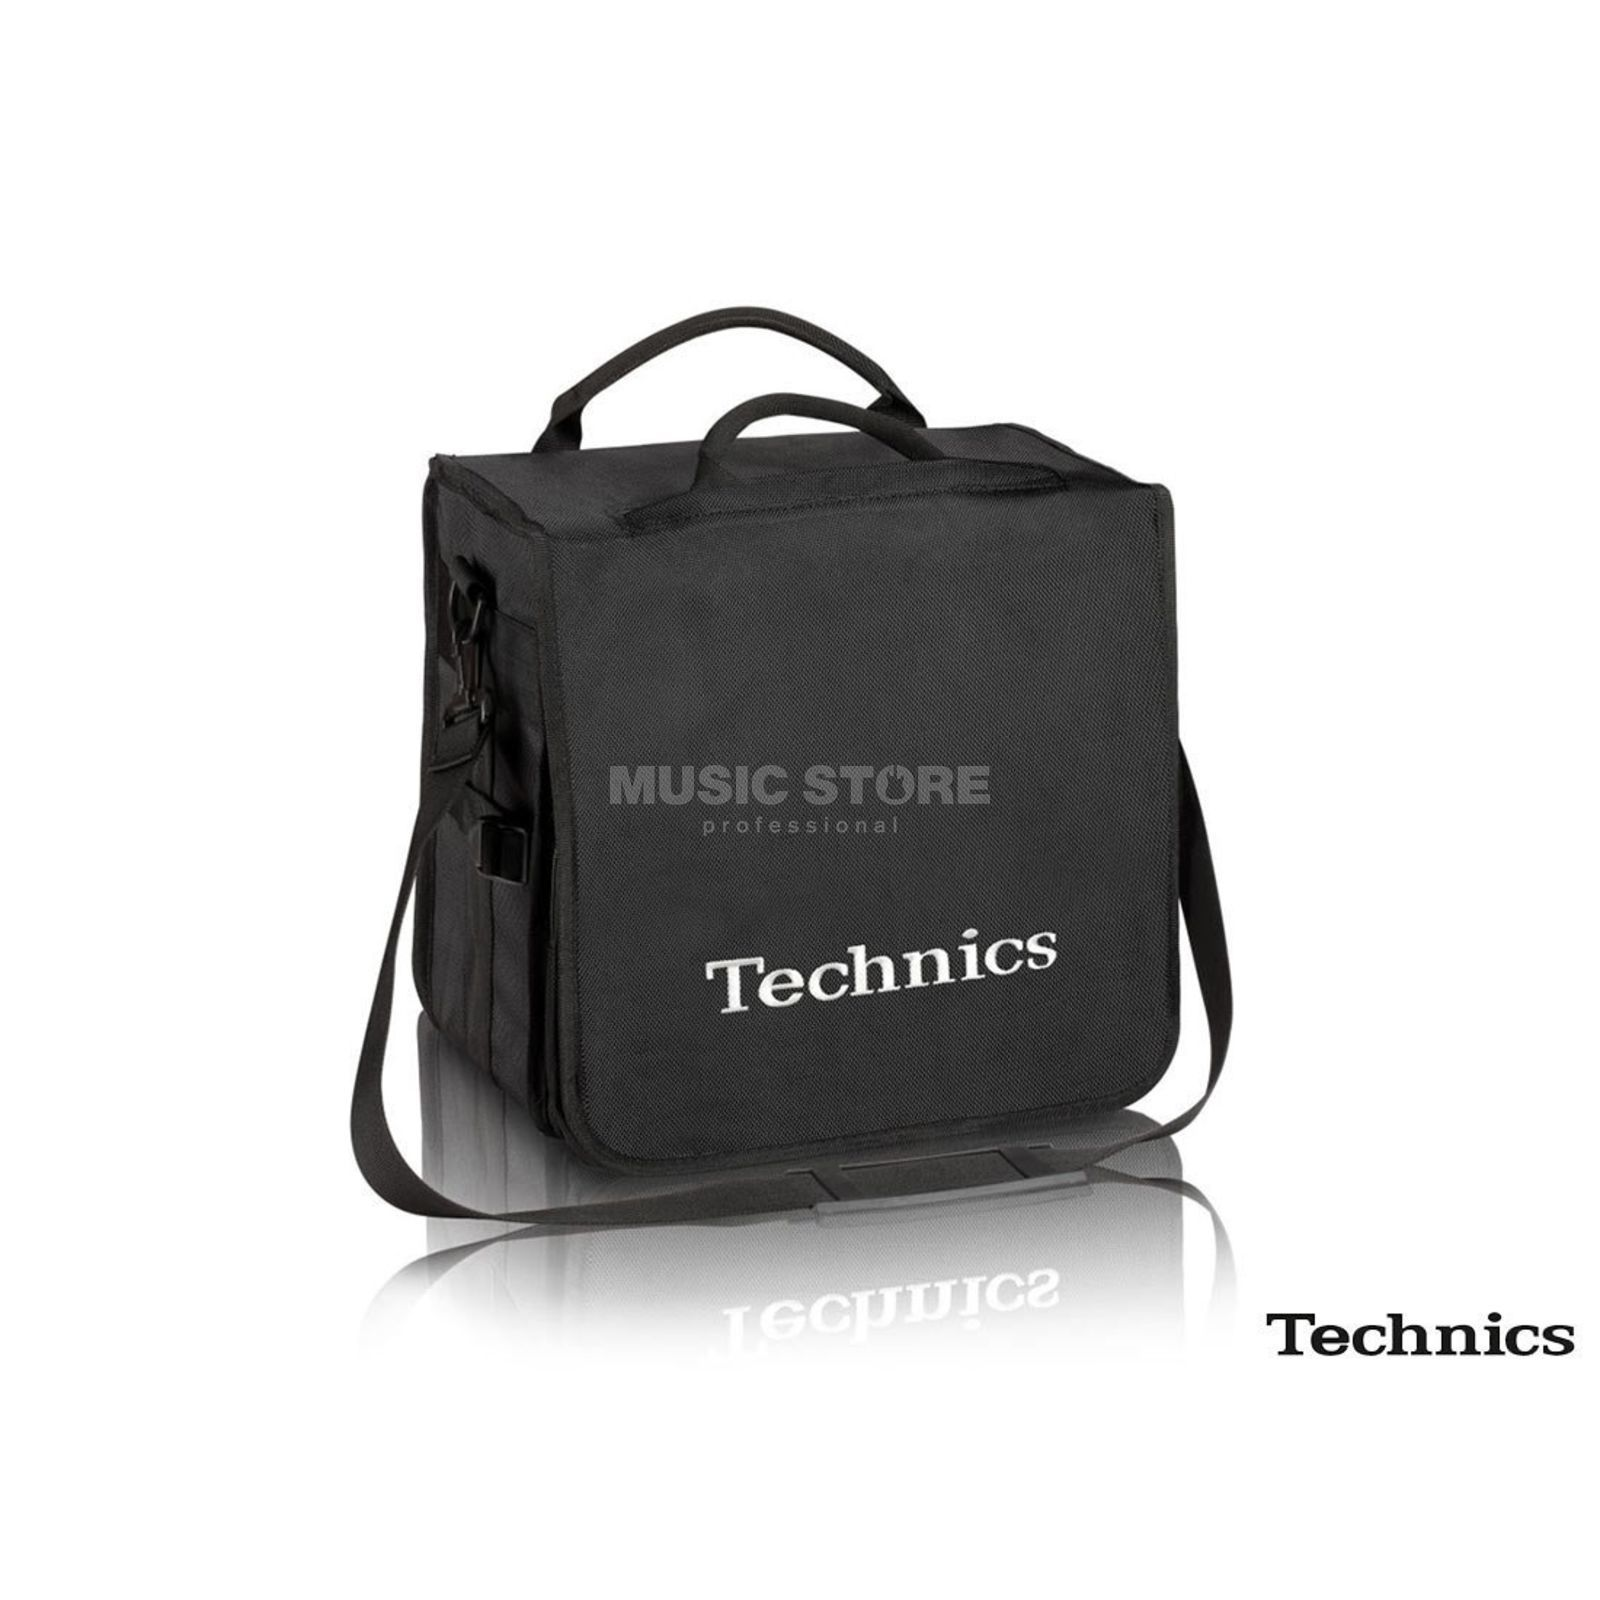 Technics BackBag Black-silver  Product Image